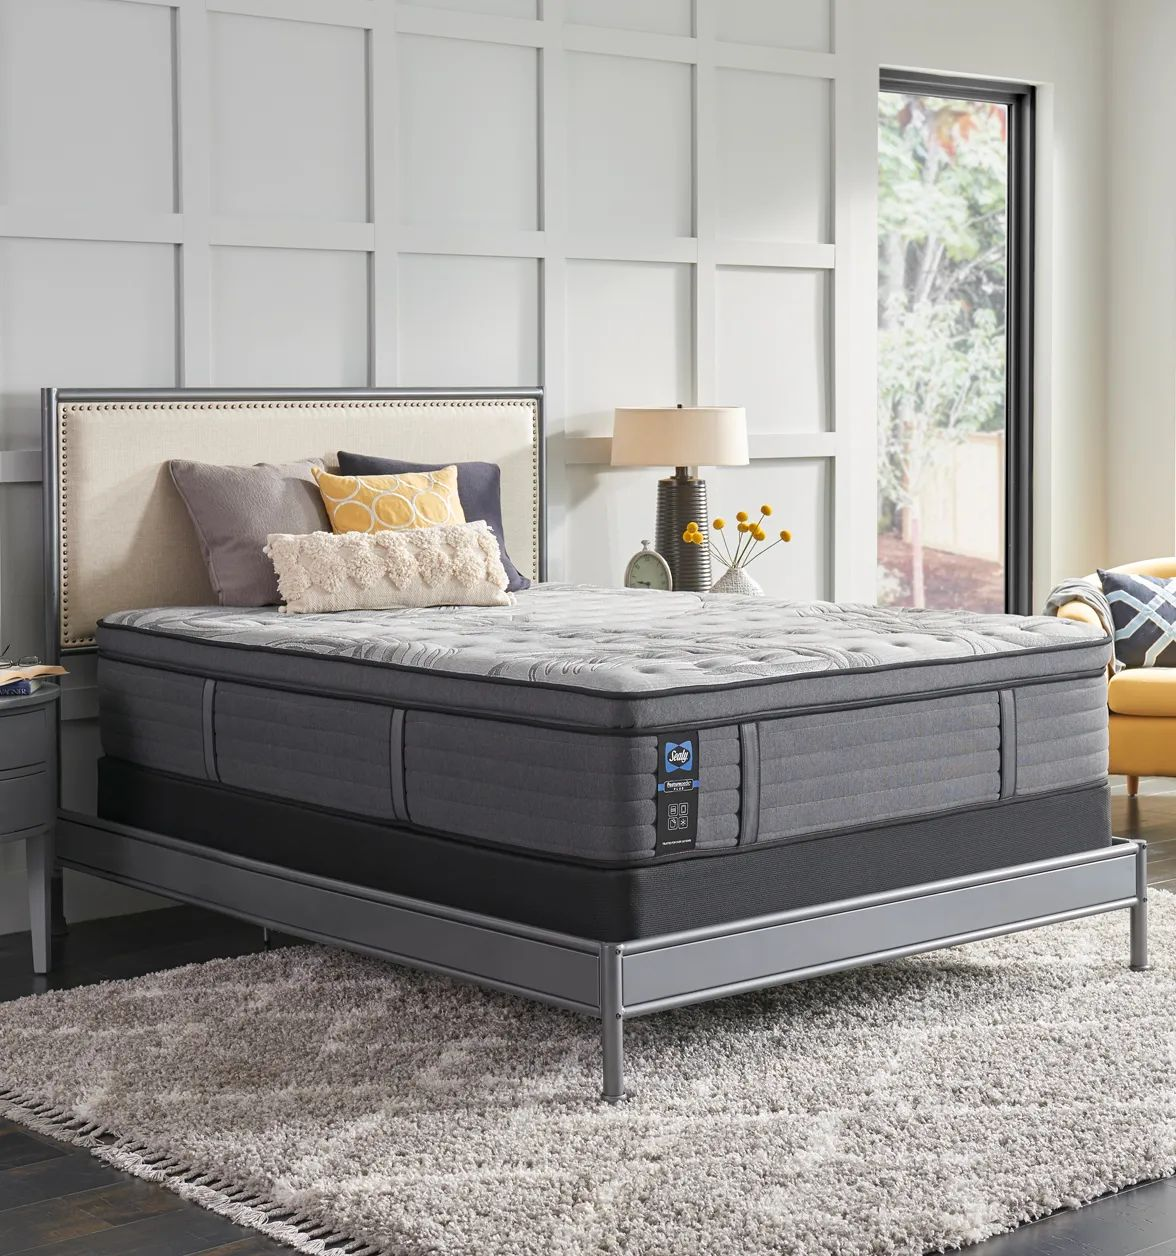 king sealy posturepedic plus warrenville v 14 inch soft pillow top mattress